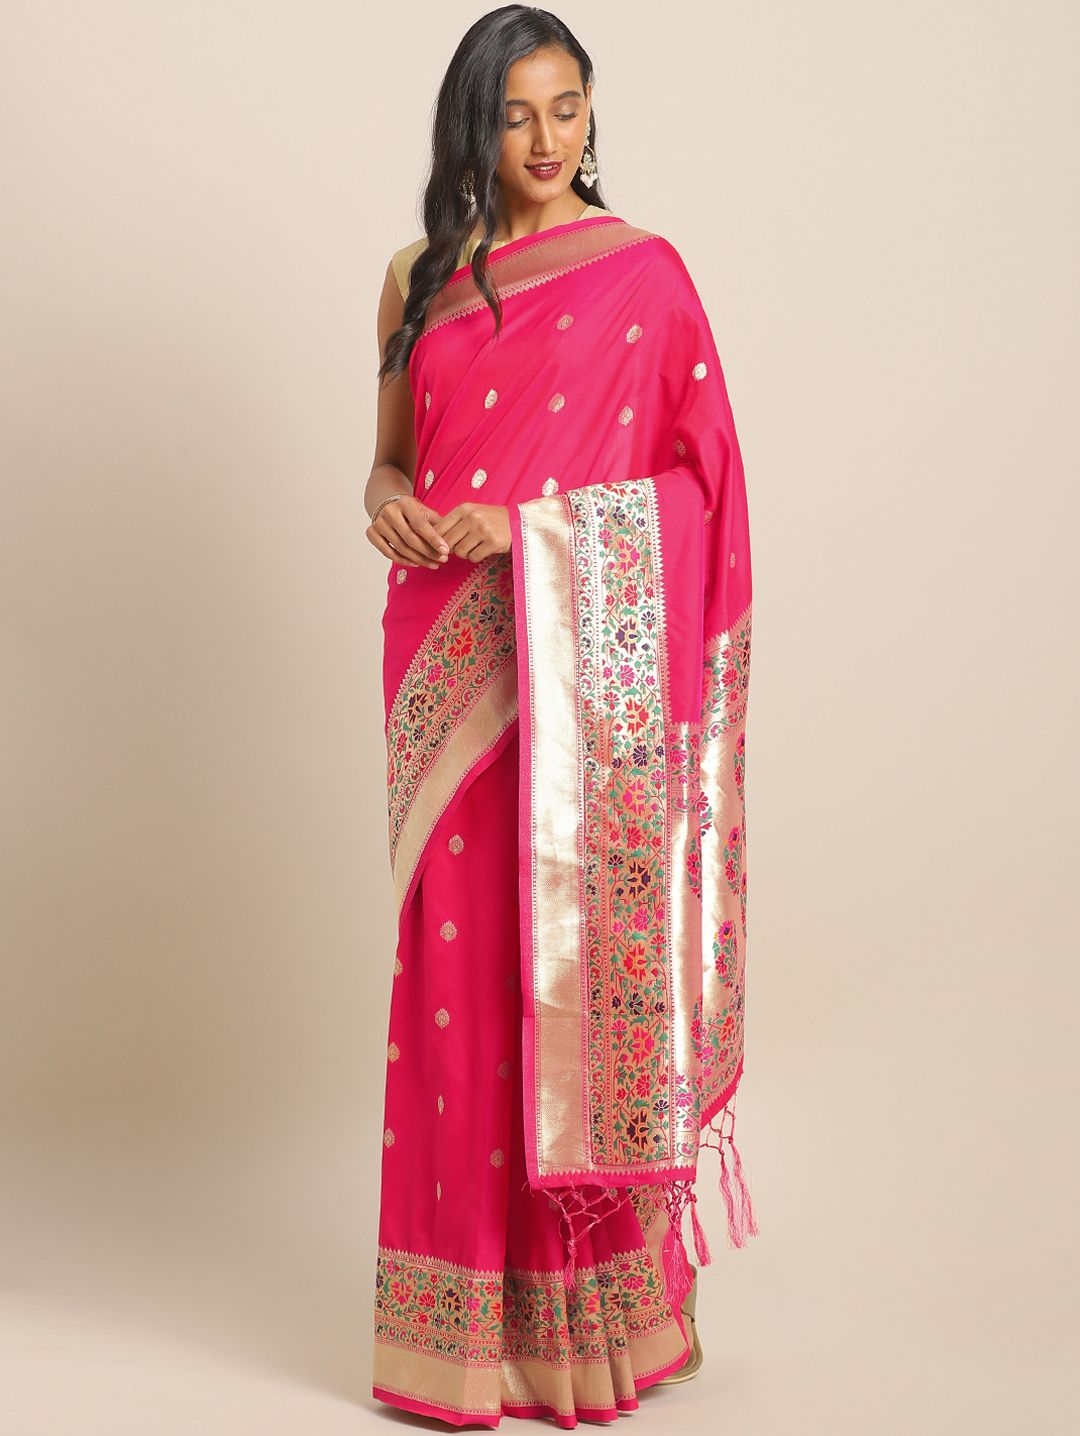 Rani Pink Banarasi Silk Traditional Woven Paithani Saree